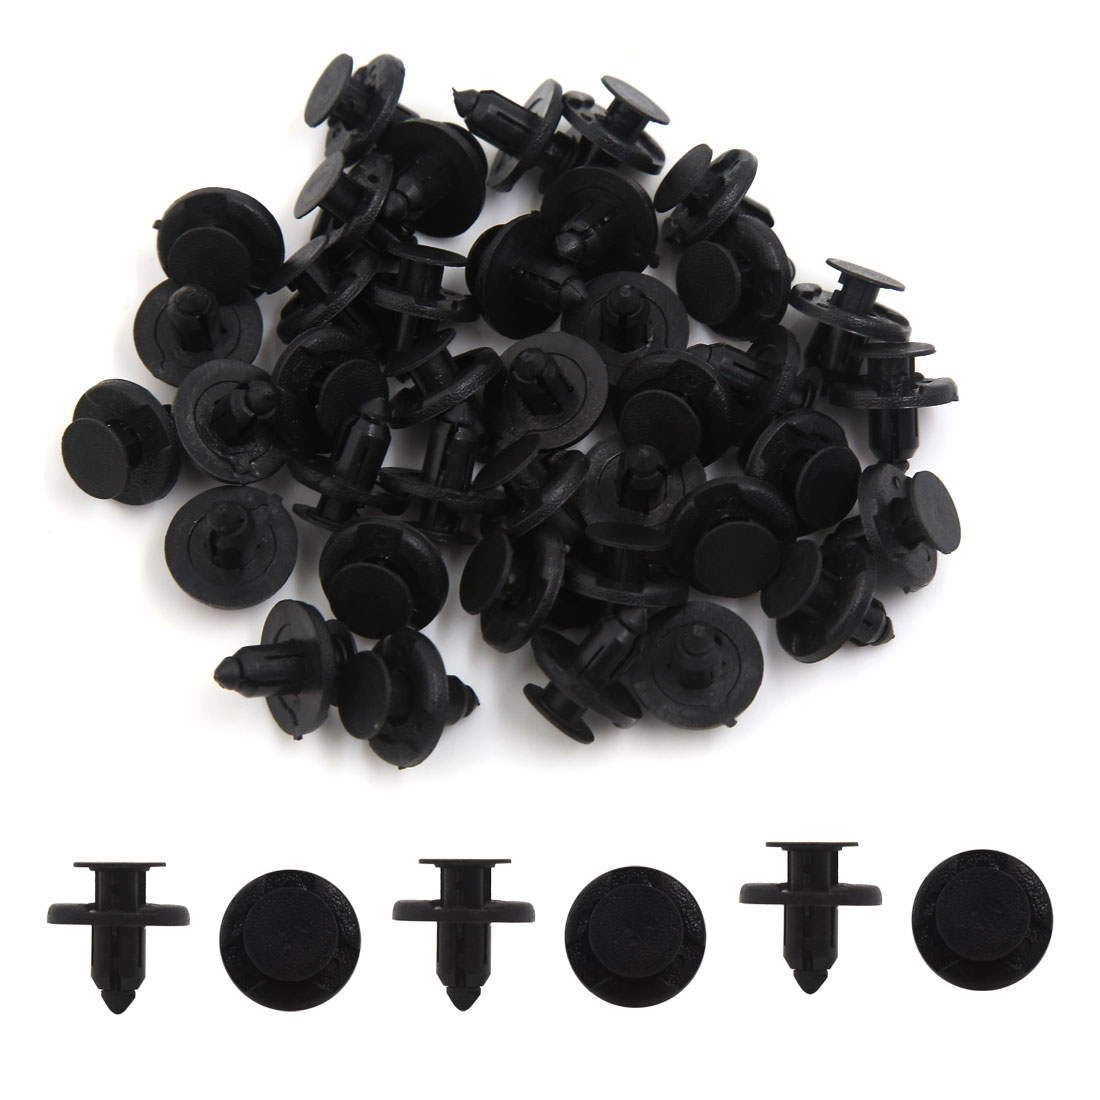 40 Pcs 8mm Dia Hole Plastic Rivets Fastener Push Clips Black for Car Auto Fender - image 1 of 2